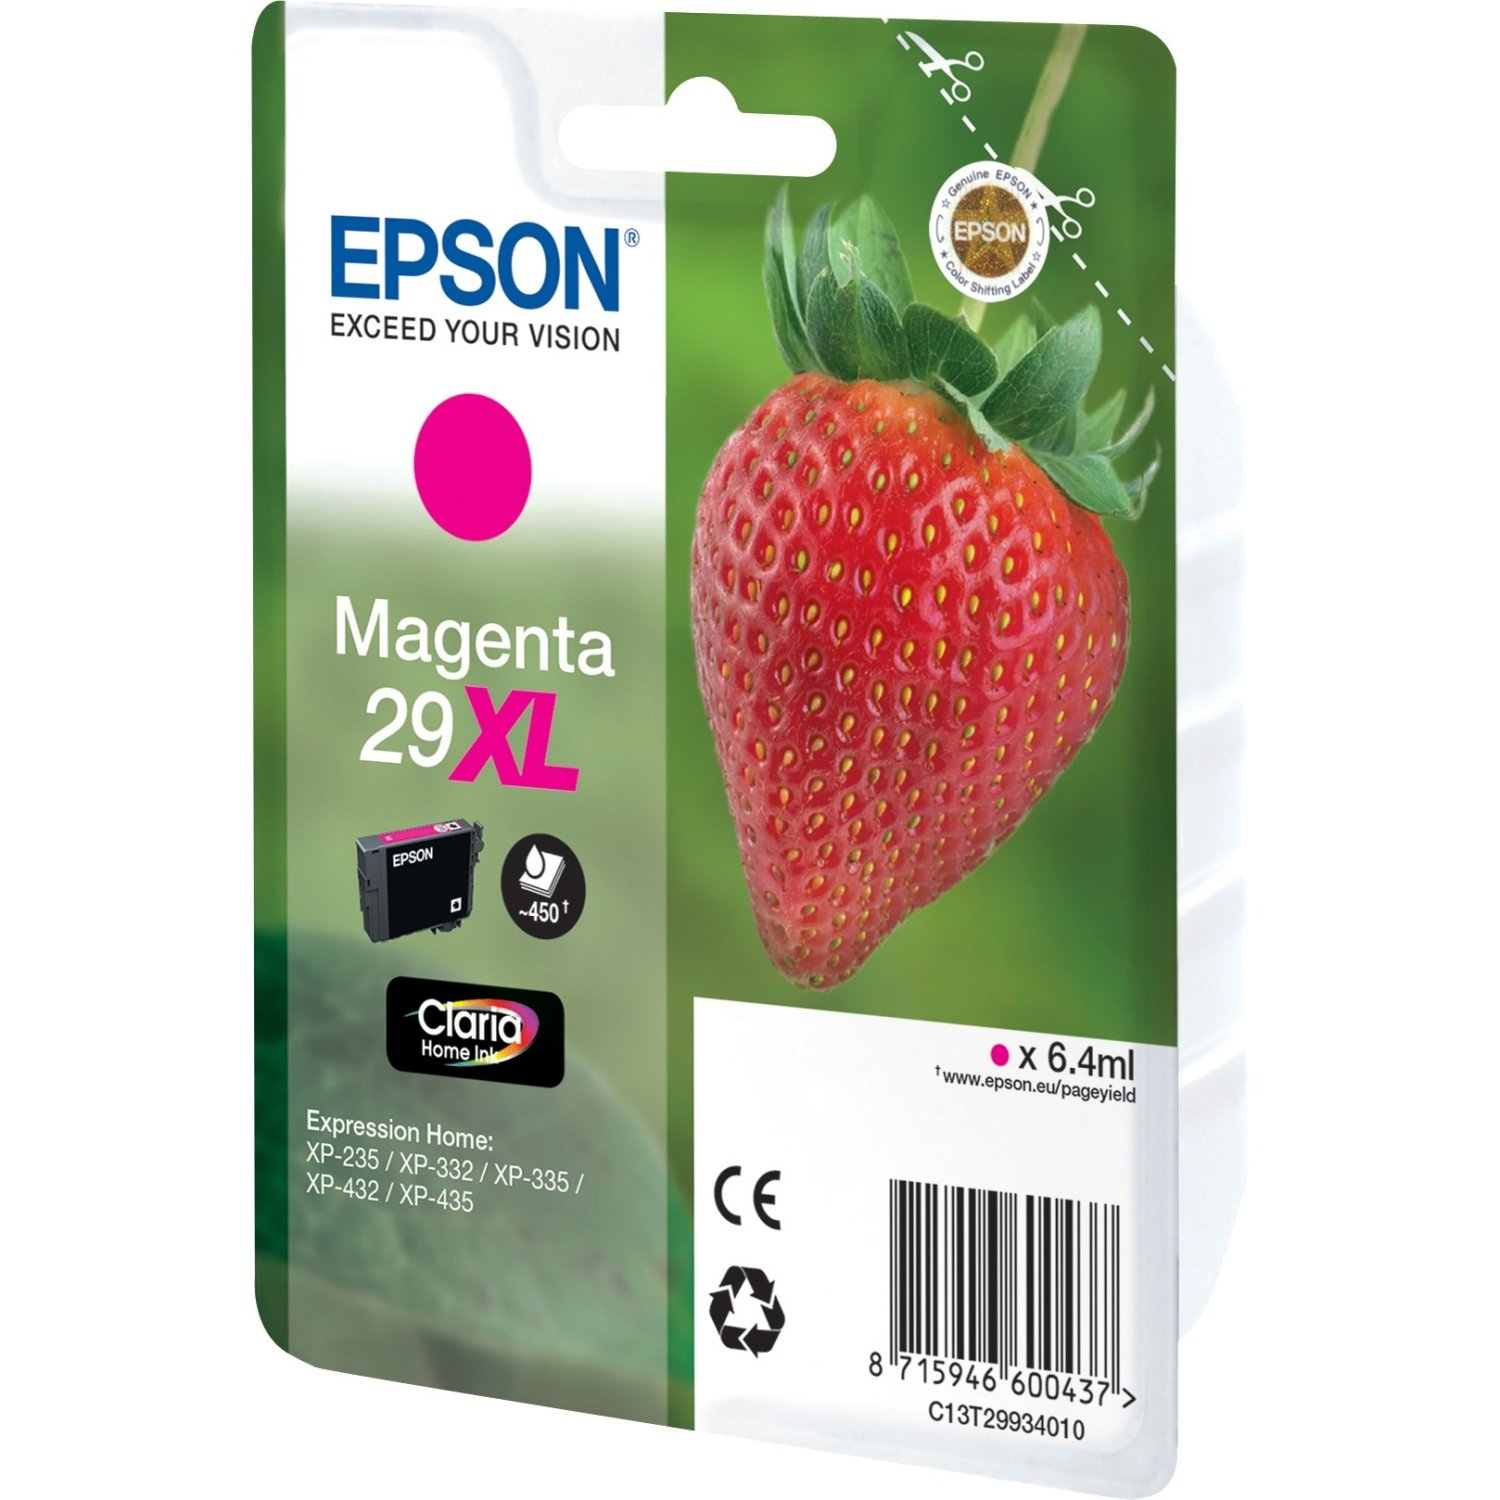 Genuine Magenta Epson 29XL High Capacity Ink Cartridge - (T2993 Strawberry Inkjet Printer Cartridge)